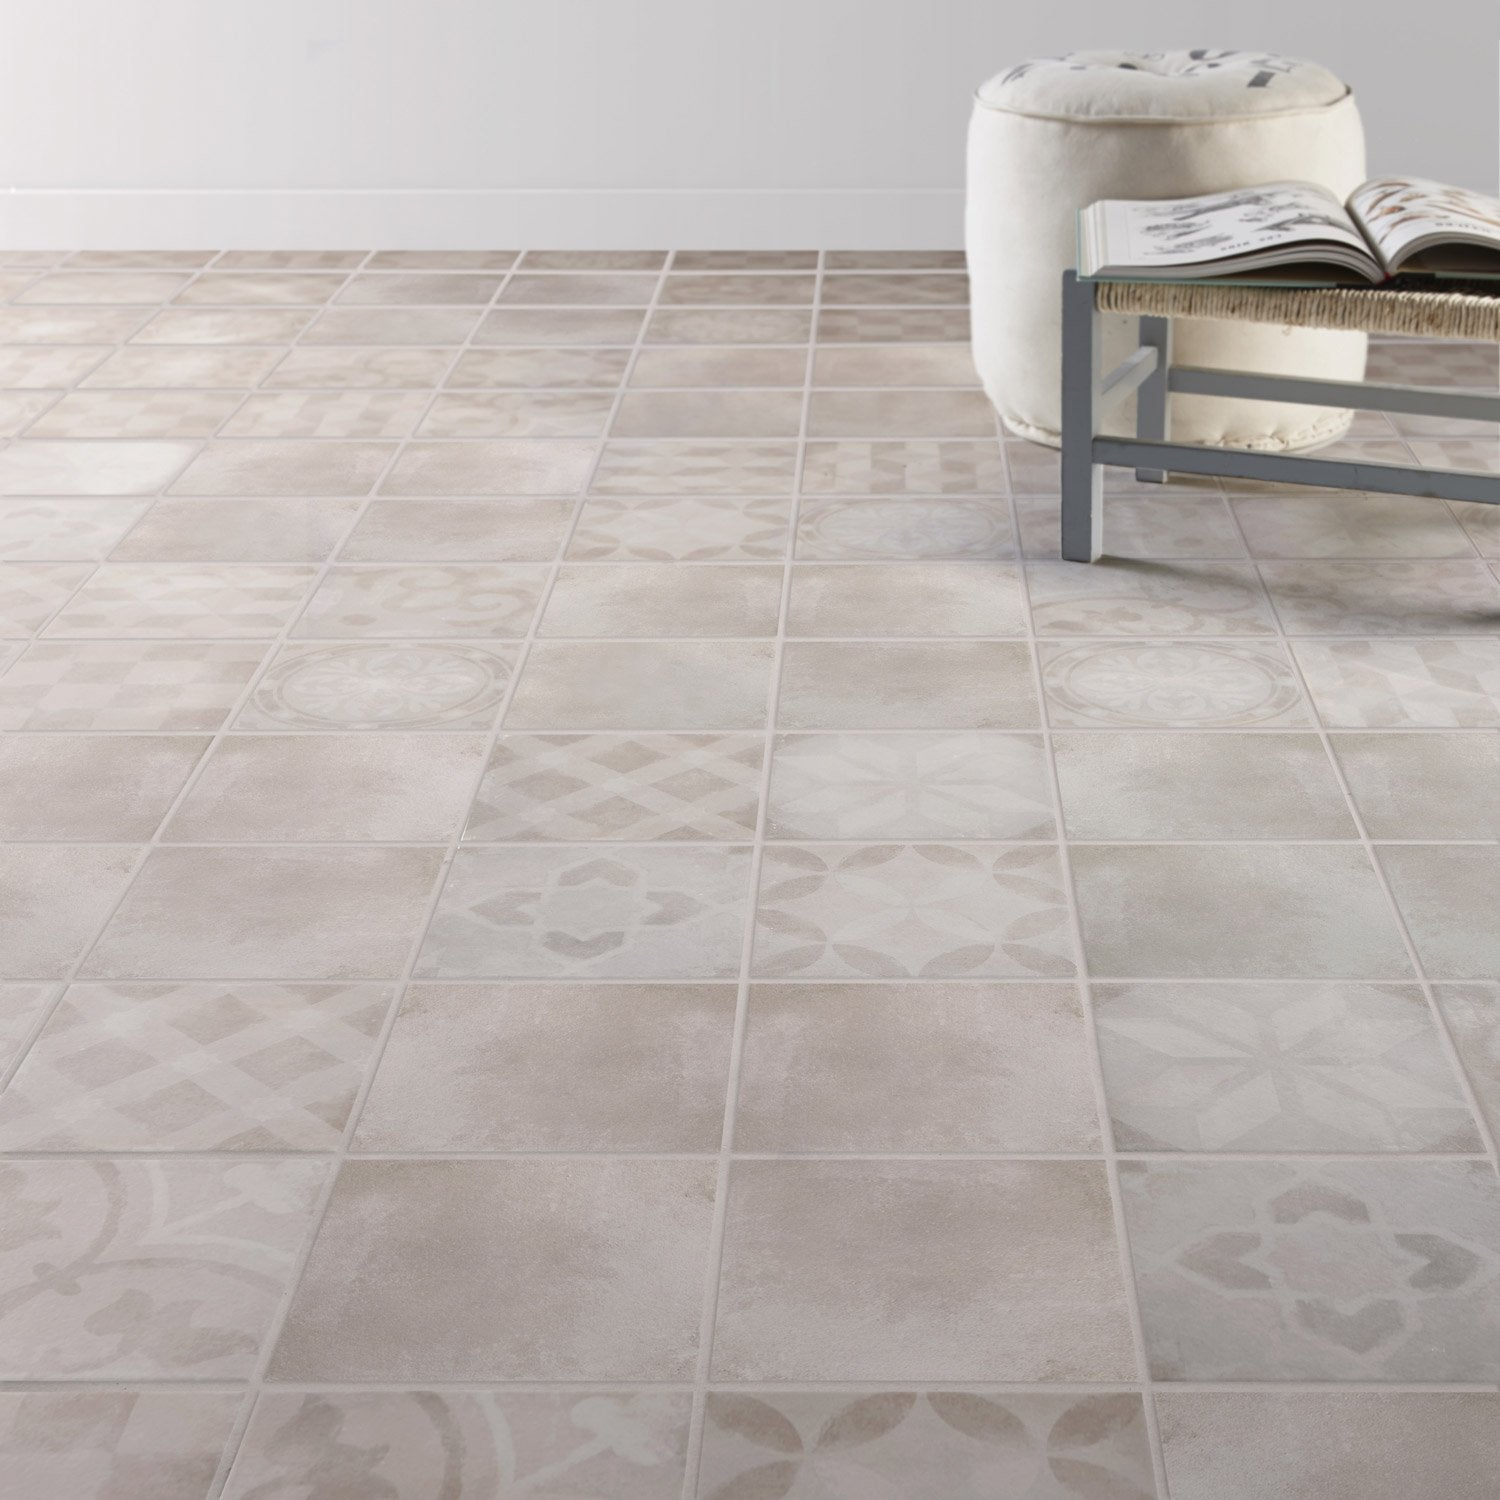 Carrelage sol et mur gris effet ciment bistro x for Carrelage le roy merlin